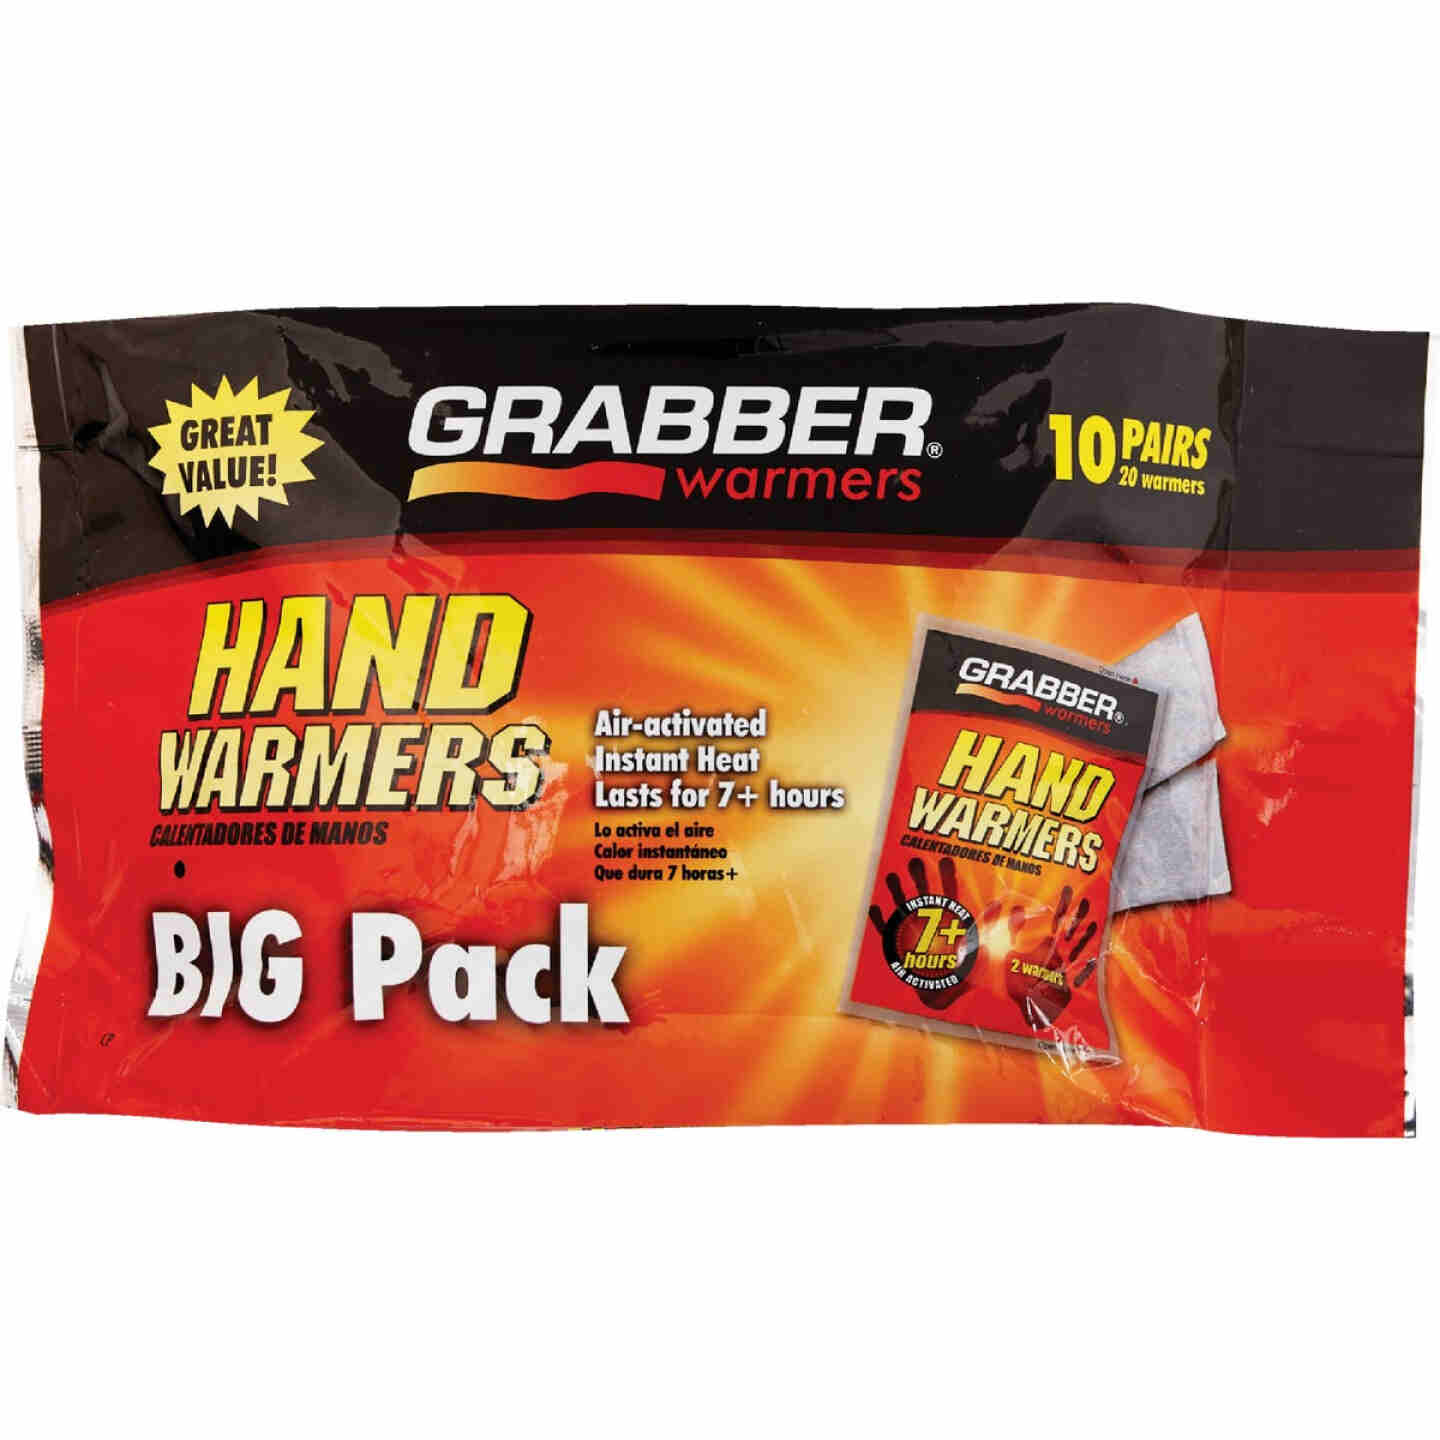 Grabber Disposable Hand Warmer (10-Pack) Image 2